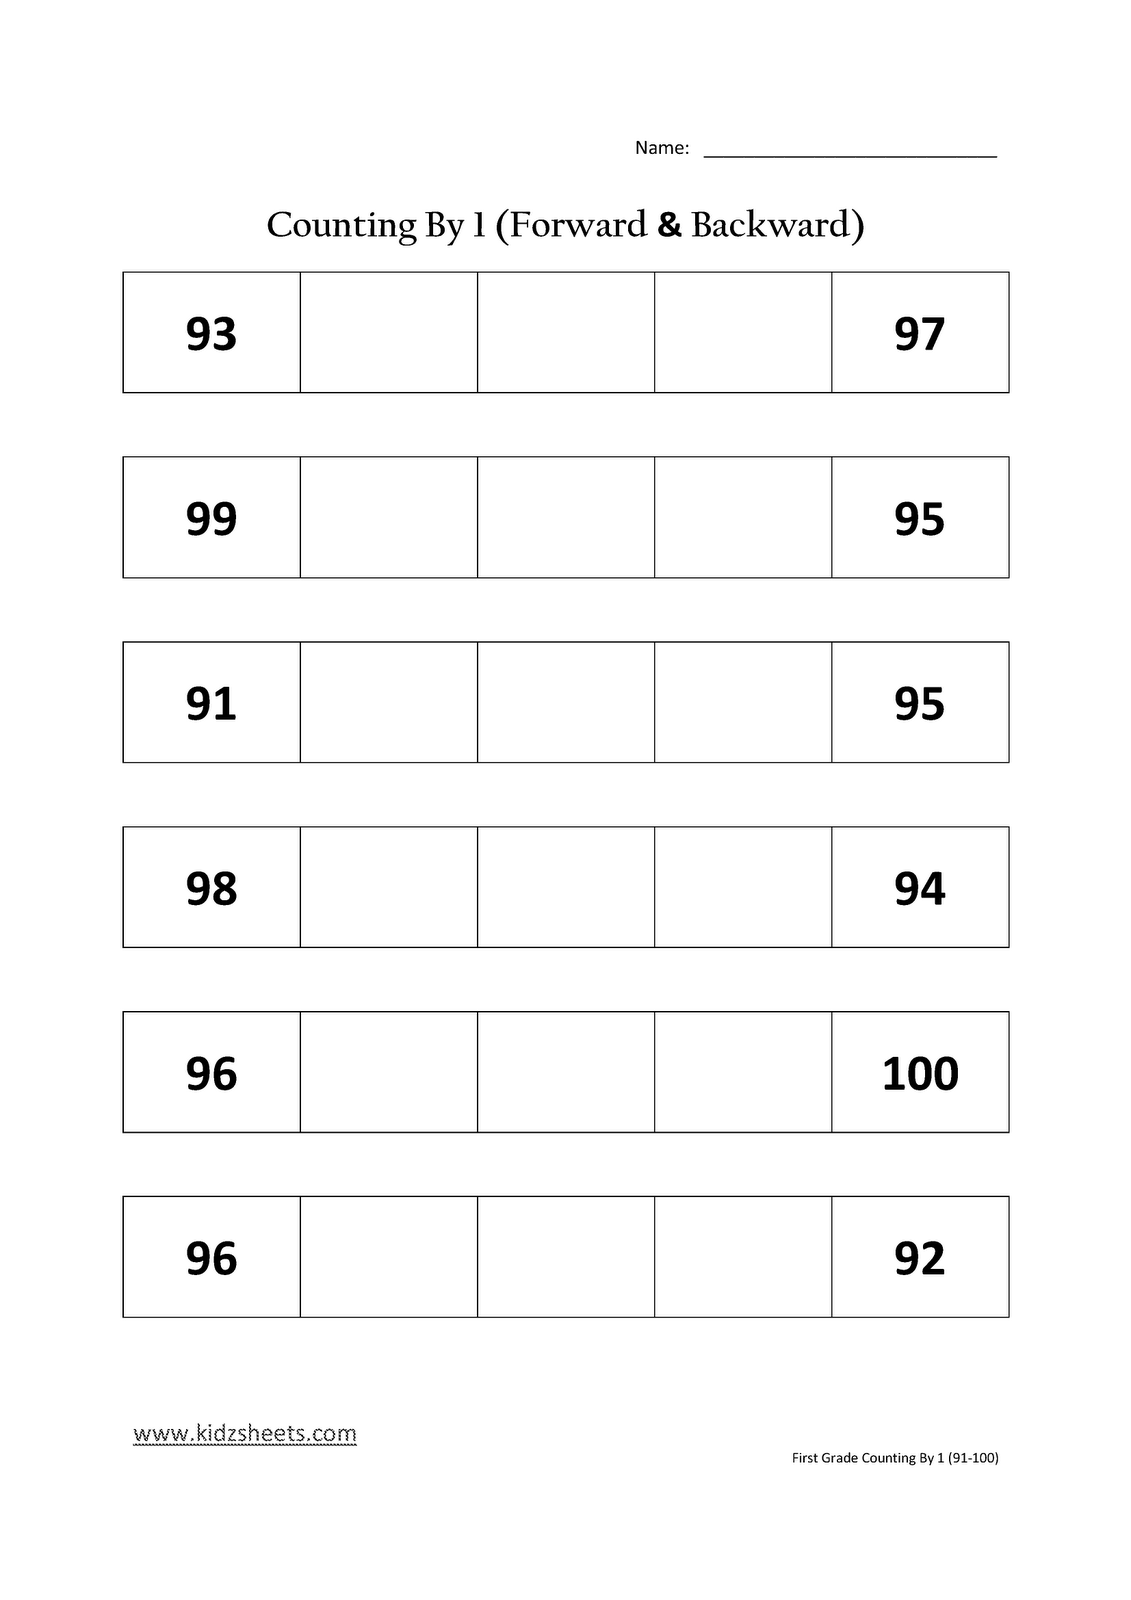 Kidz Worksheets First Grade Counting By 1 91 100